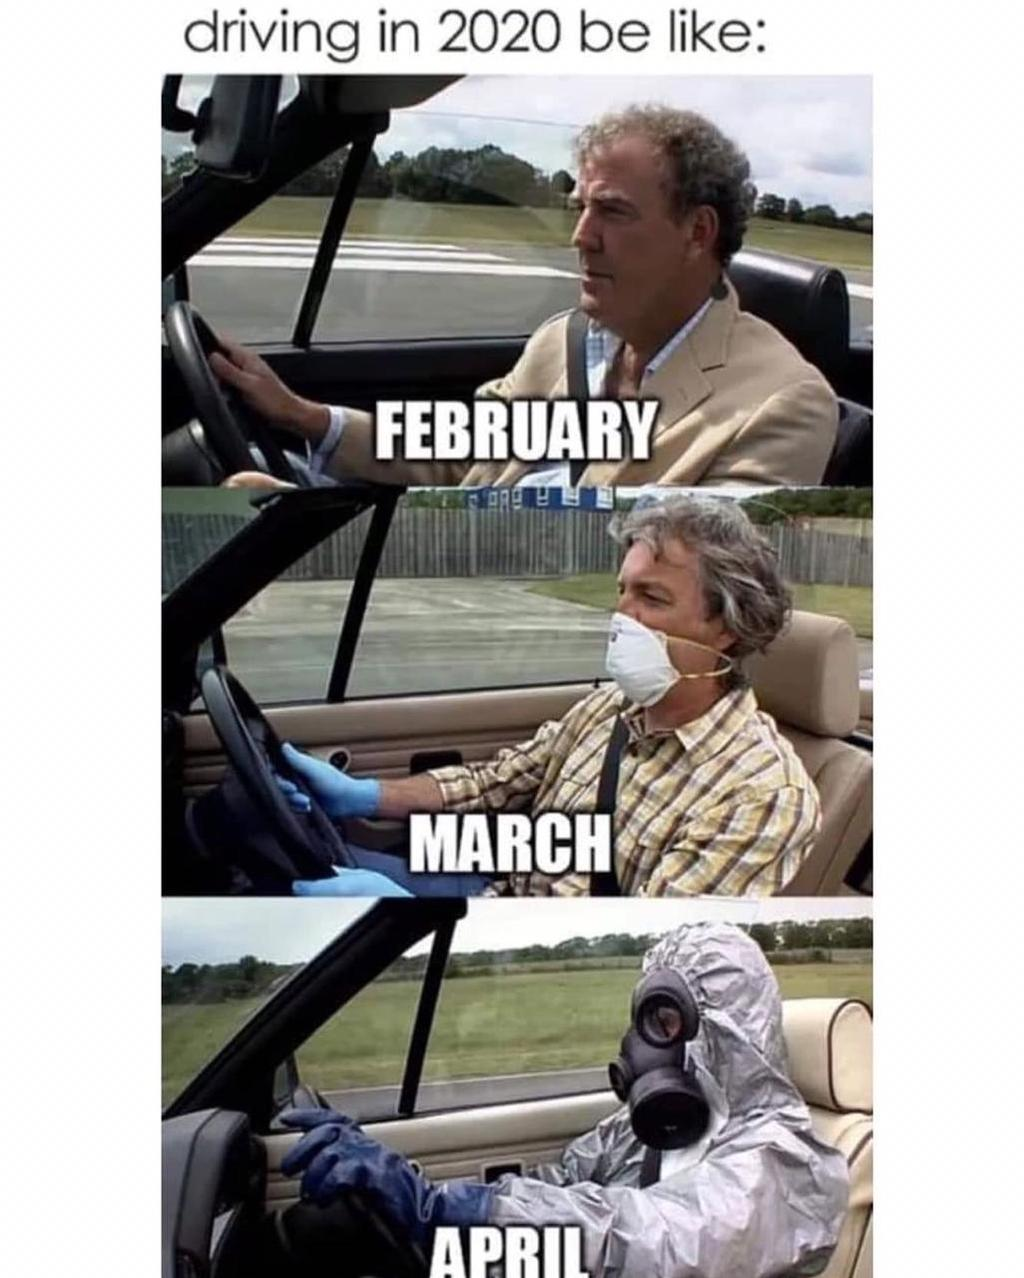 Driving In 2020 Be Like Top Gear February Jeremy Clarkson March James May April Richard Hammond